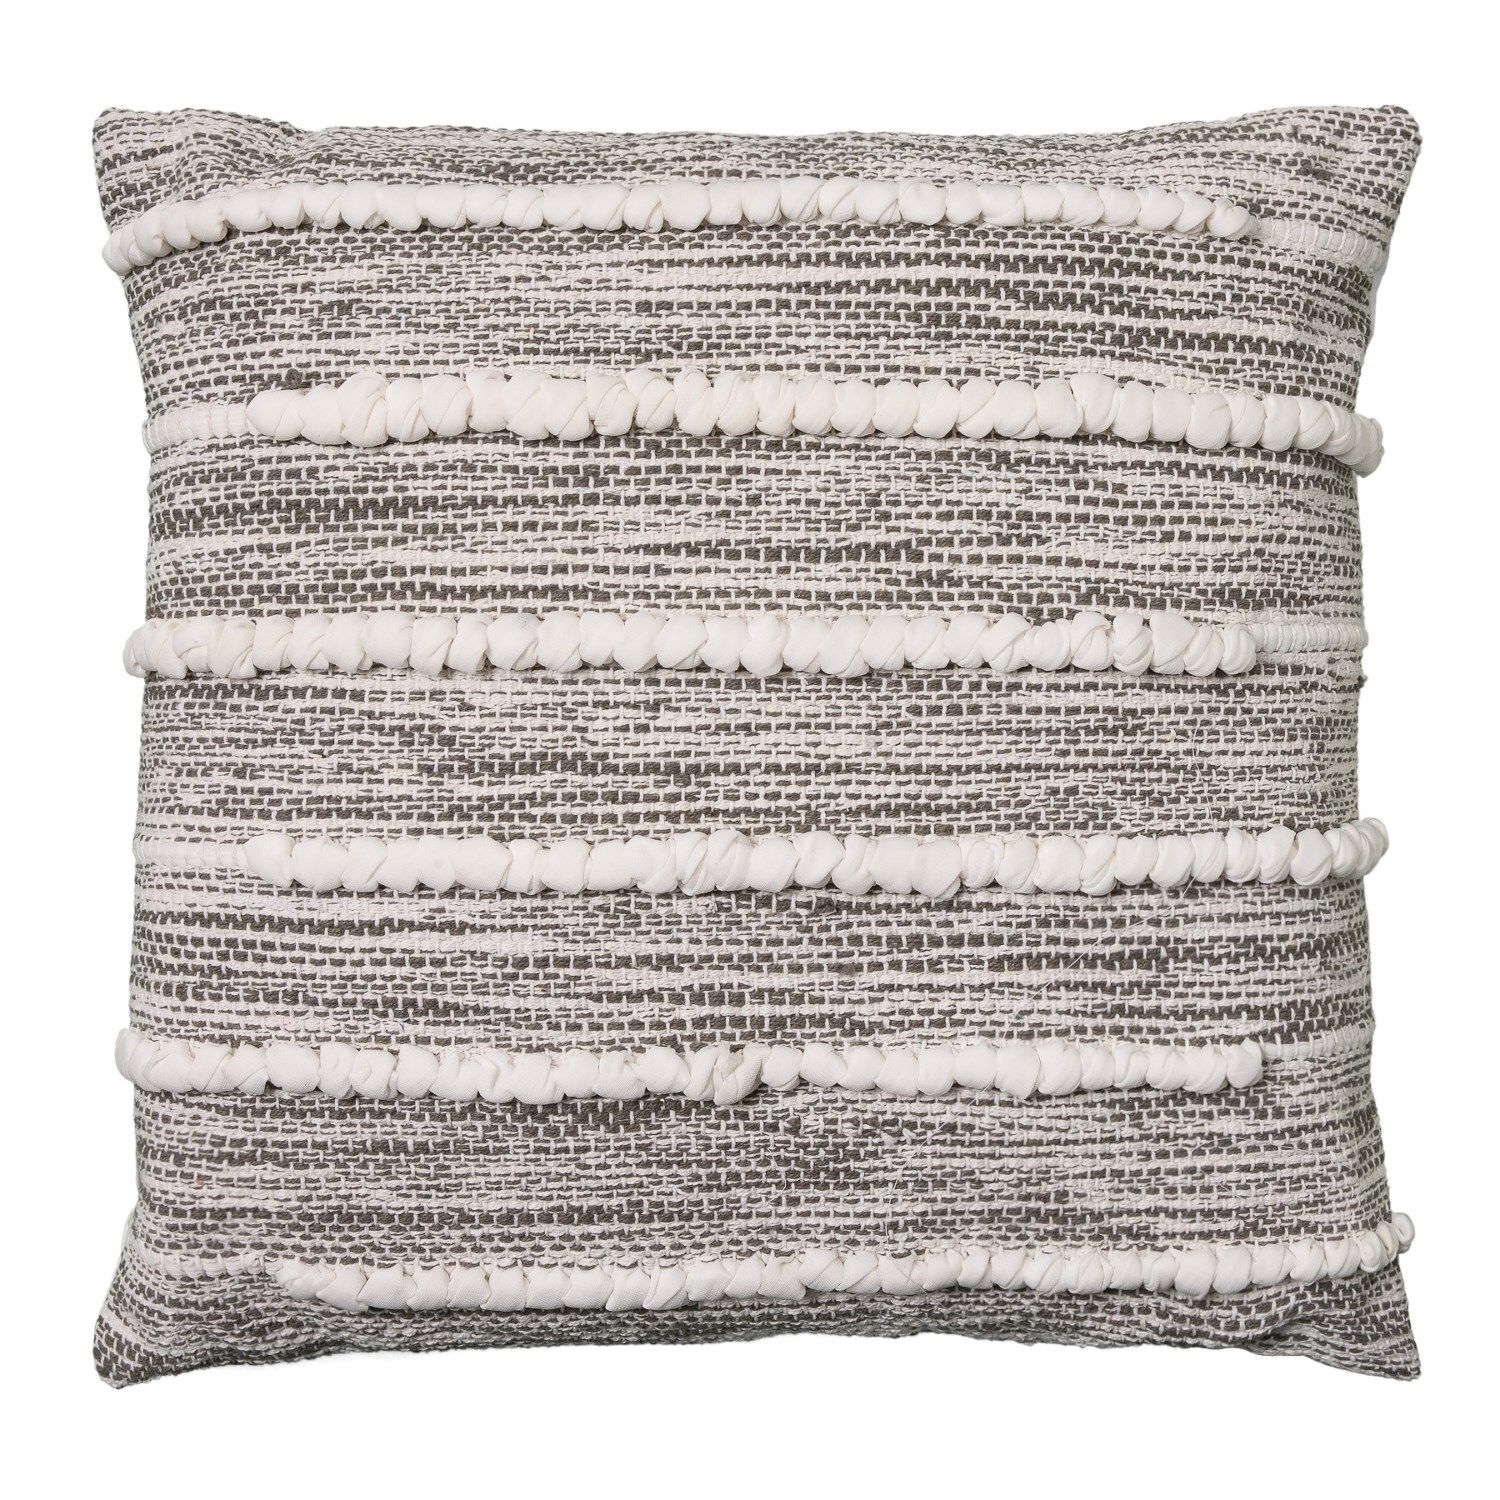 Bungalow Loft Dottie Texture Grey Throw Pillow 20x20 In Grey At